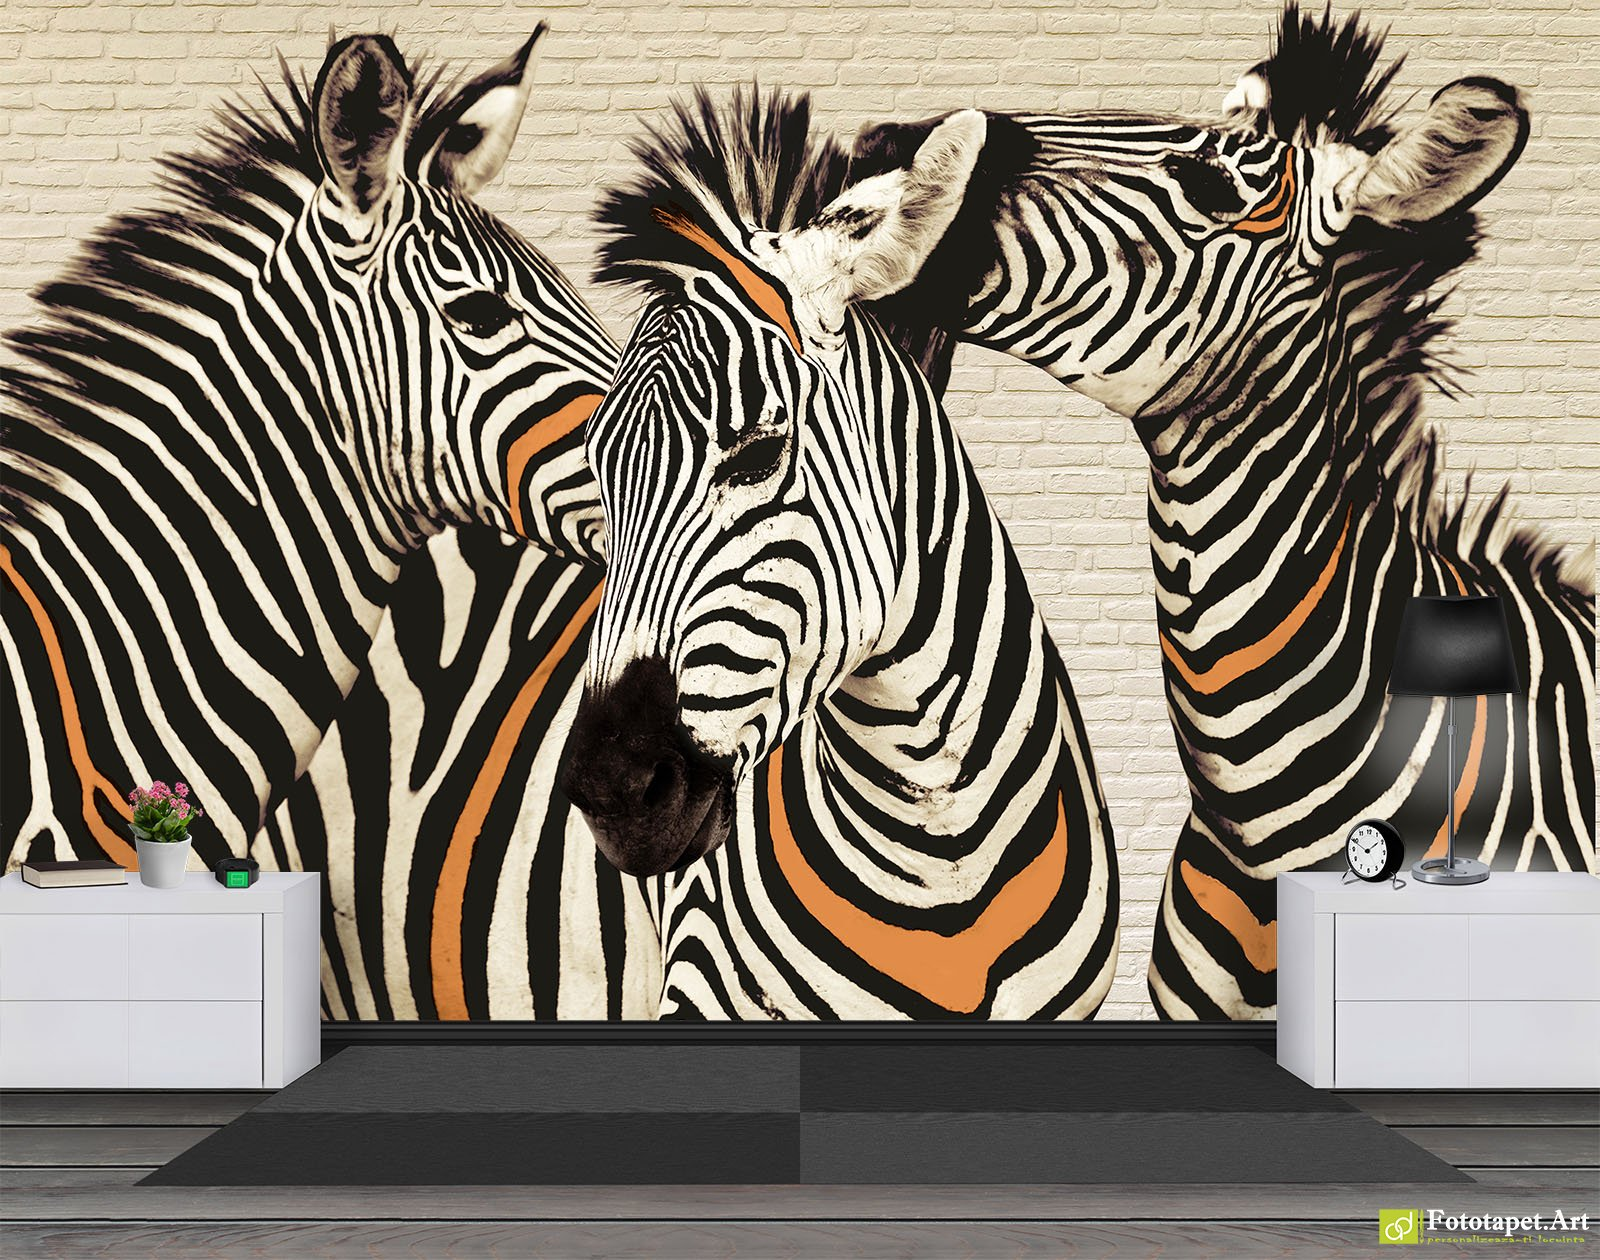 Photo wallpaper Wall Murals Three zebras Fototapetart Guaranteed